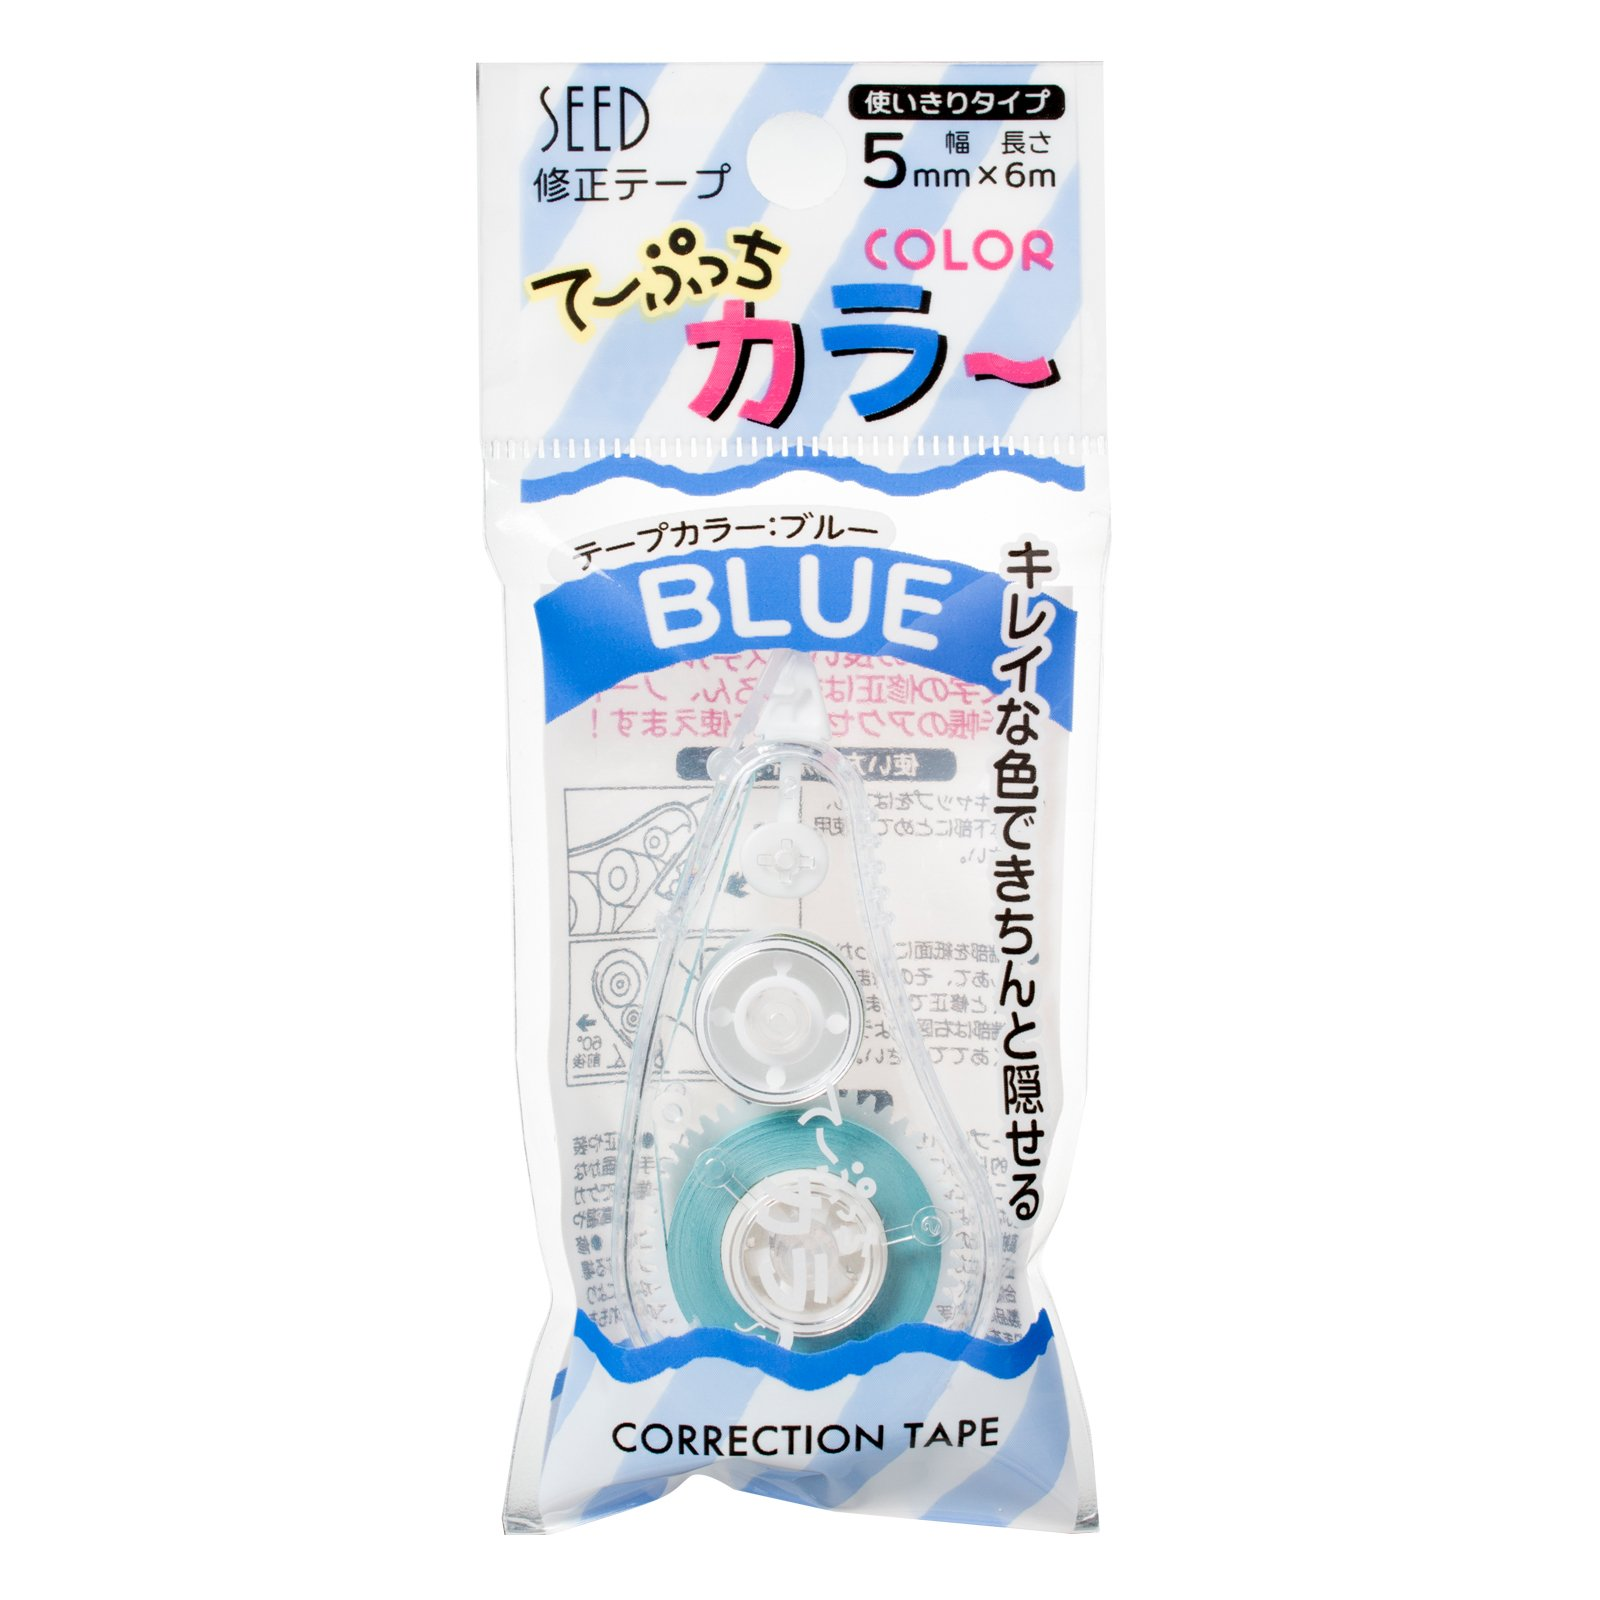 Seed correction tape Teputchi color KW-CCT5B-10P Blue by Seed (Image #1)